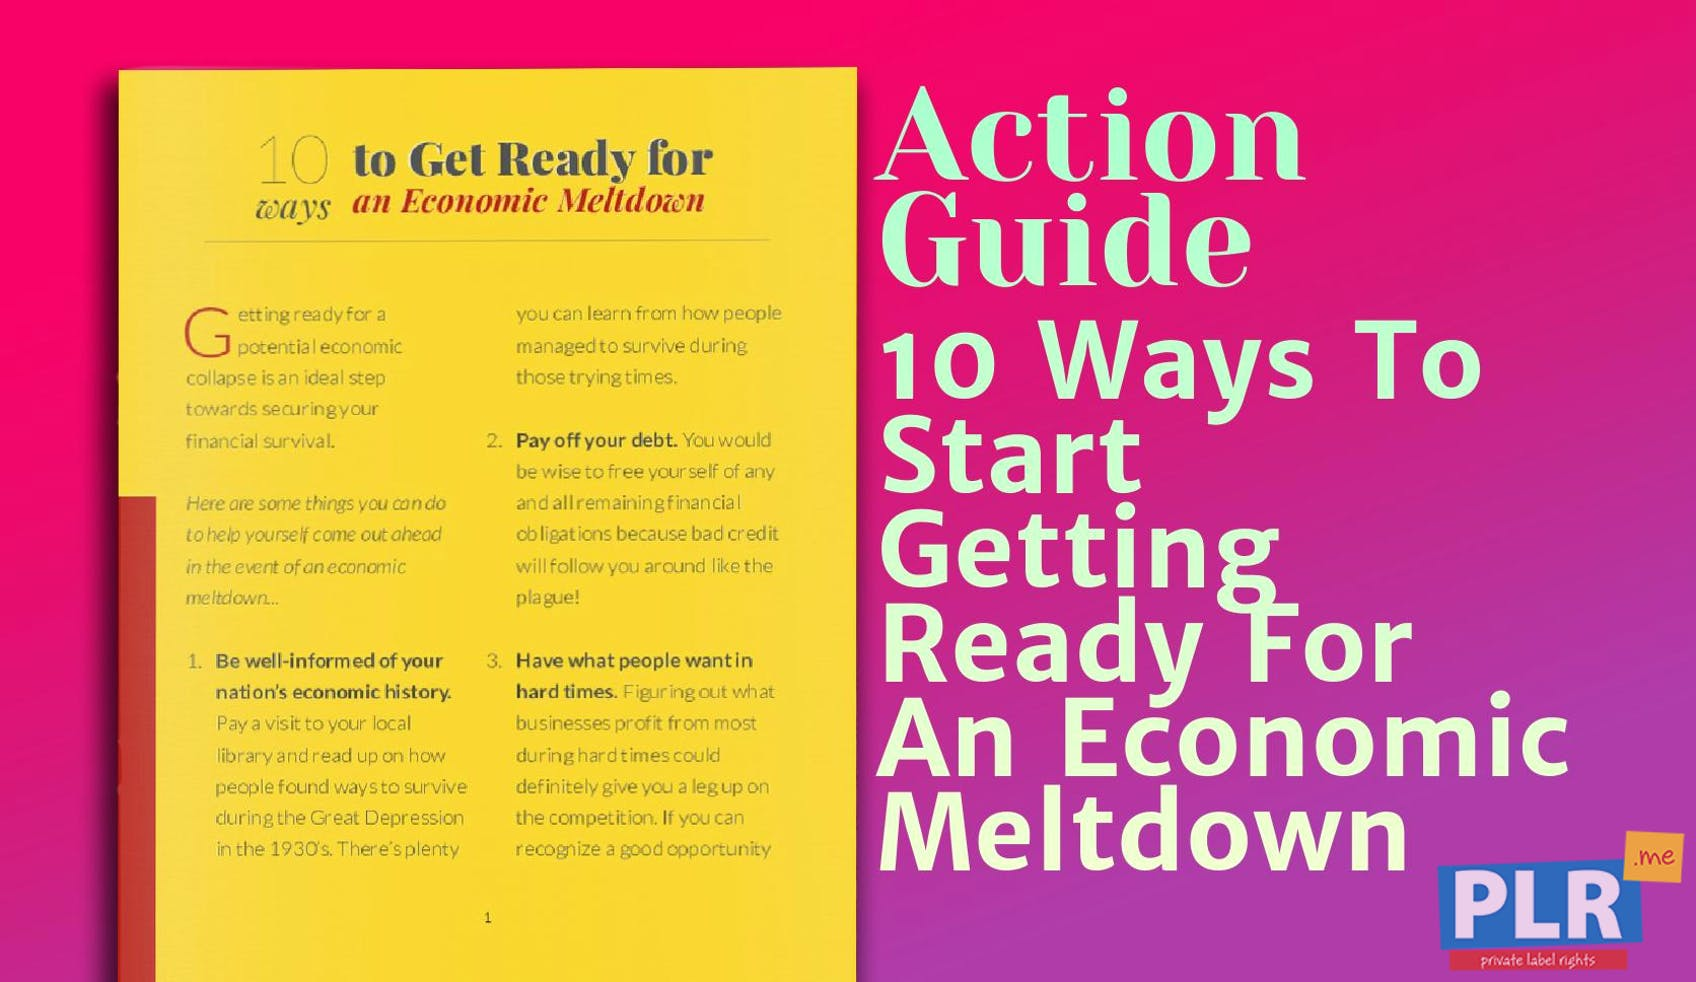 10 Ways To Start Getting Ready For An Economic Meltdown